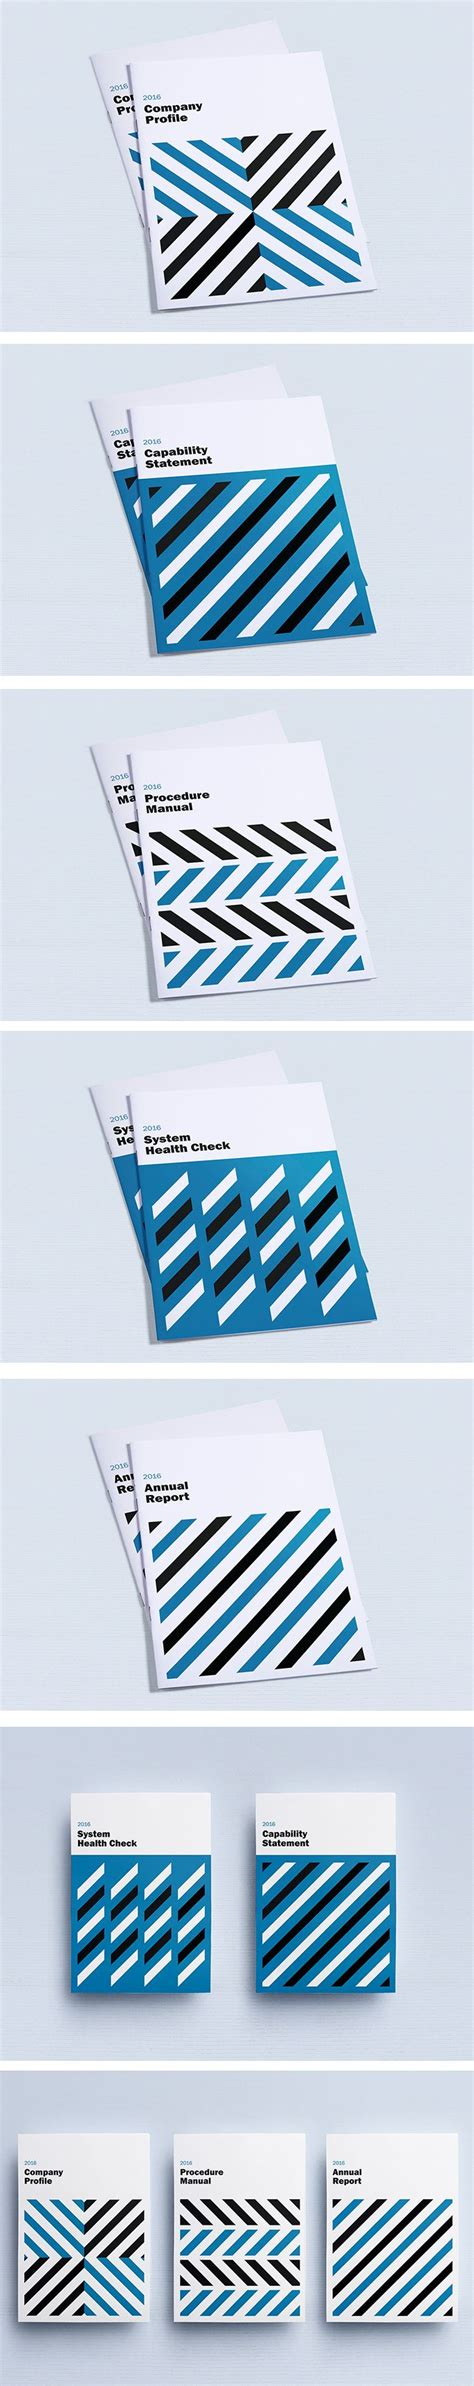 company profile layout design inspiration cover design inspiration geometric minimalist layout